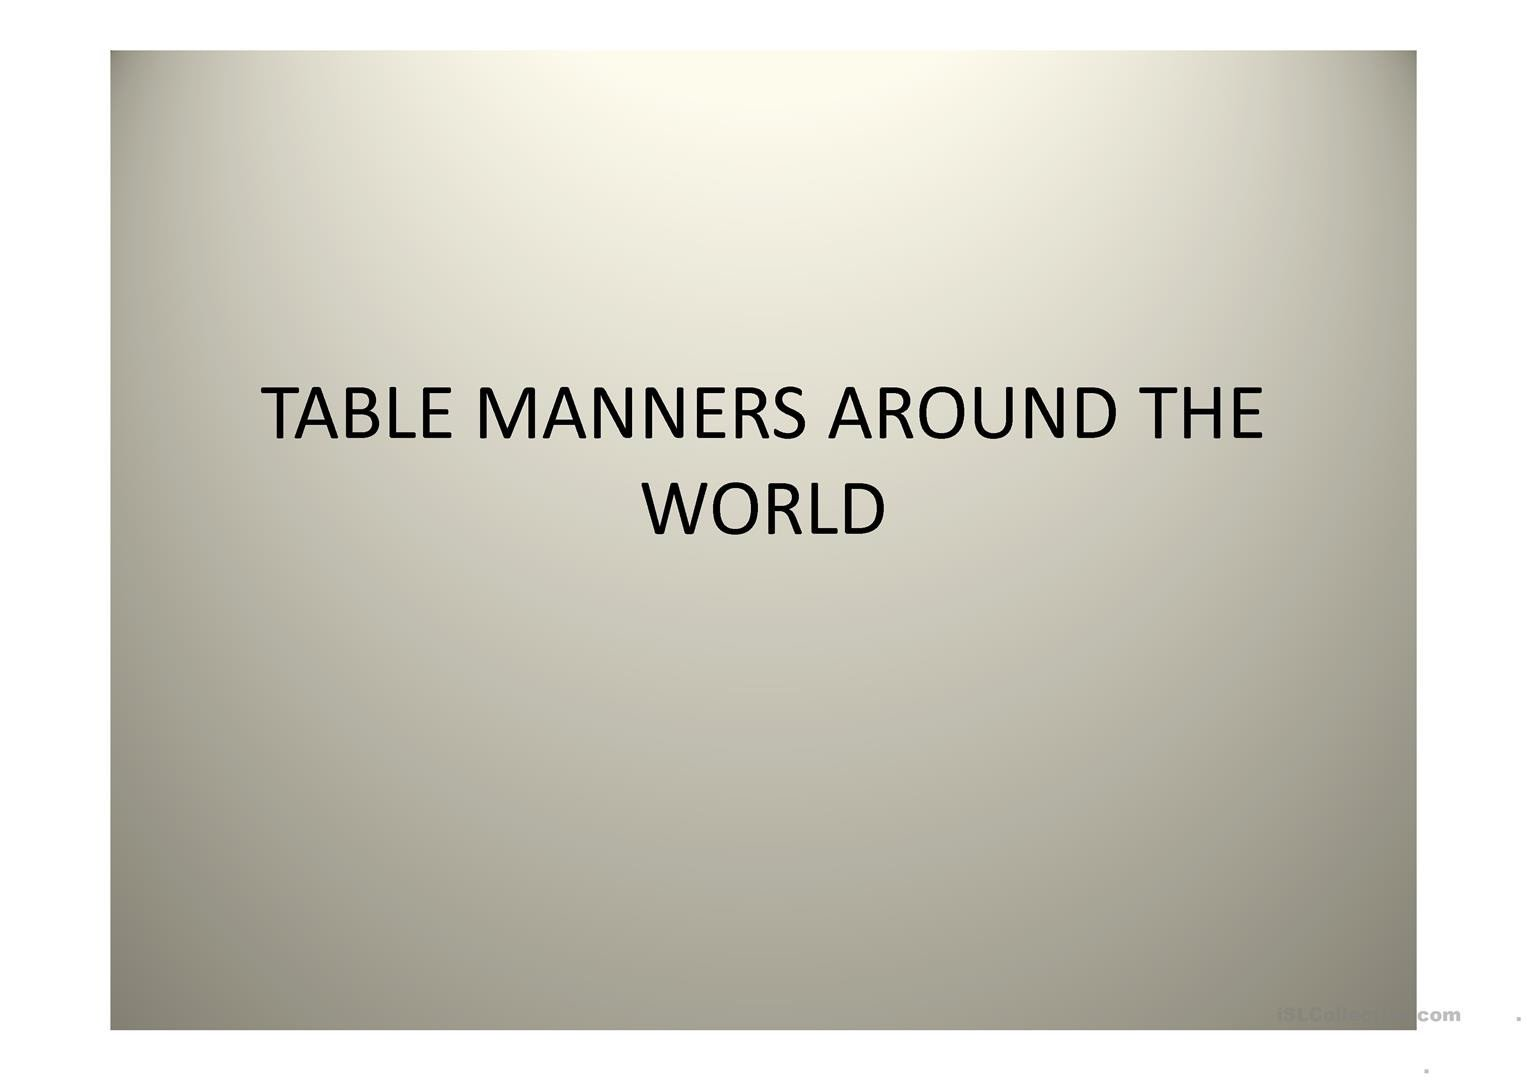 Teaching Table Manners Worksheets Table Manners Around the World English Esl Powerpoints for